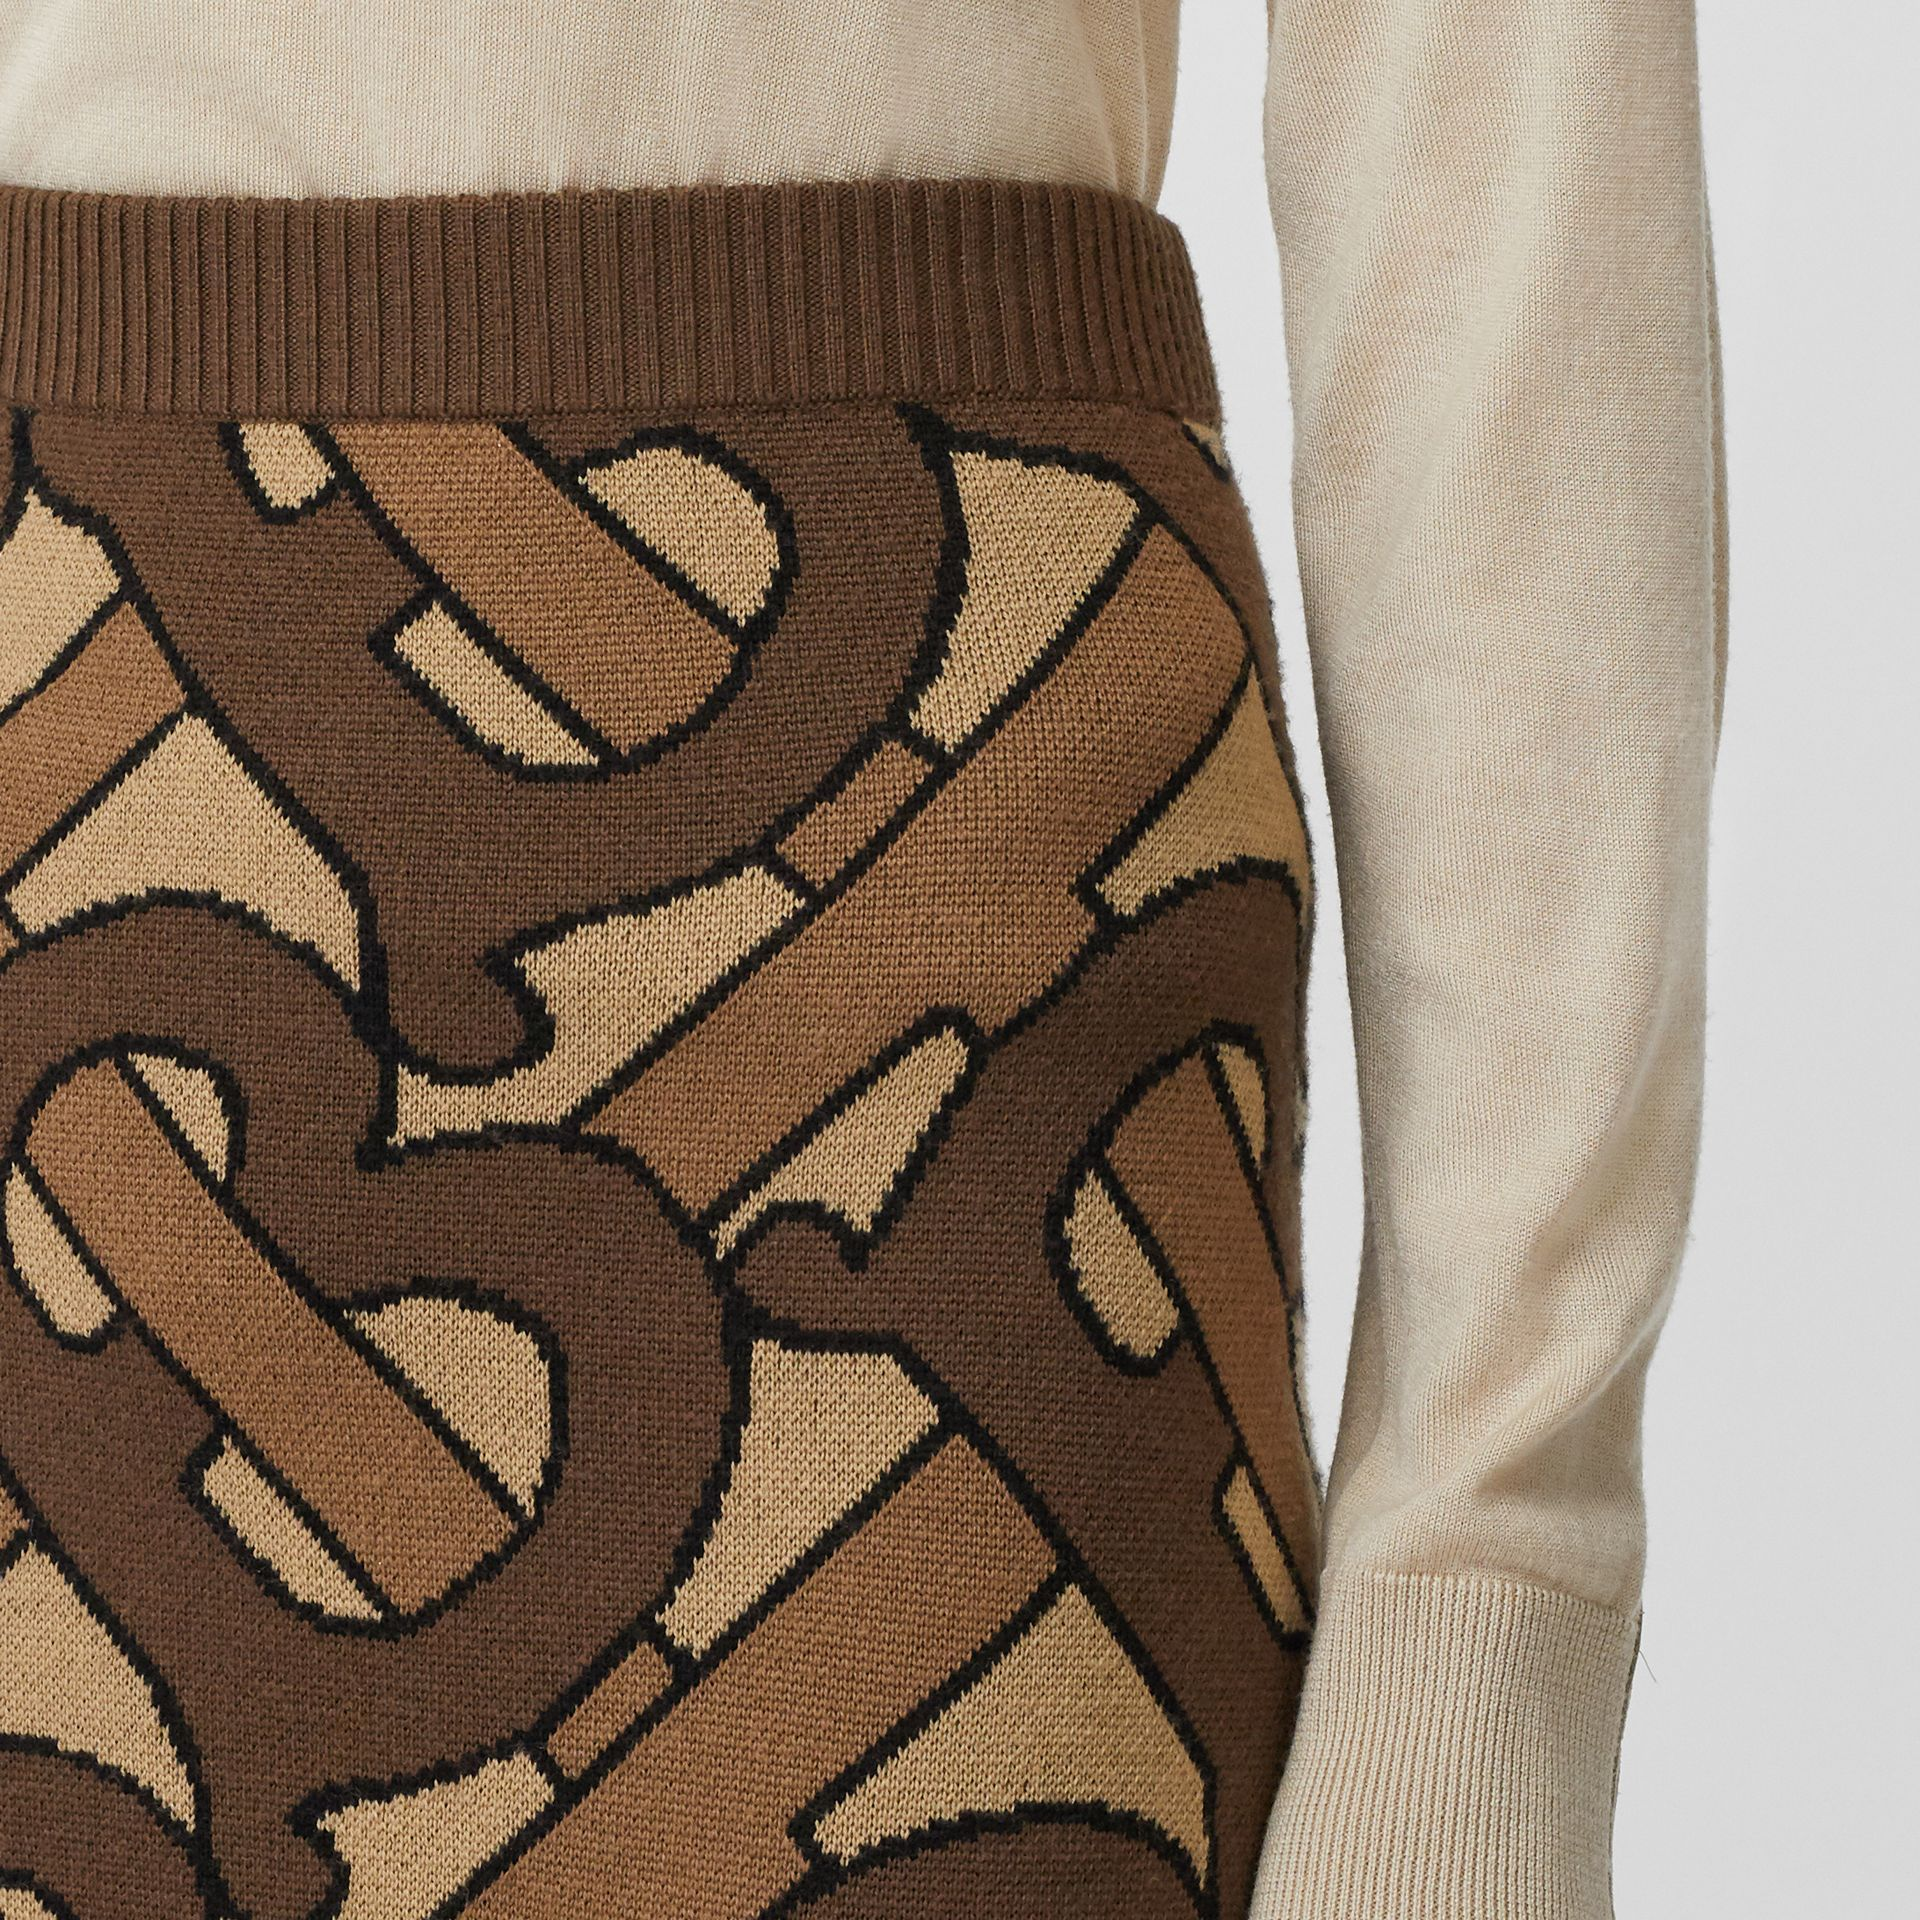 Monogram Intarsia Wool Pencil Skirt in Bridle Brown - Women | Burberry Singapore - gallery image 1